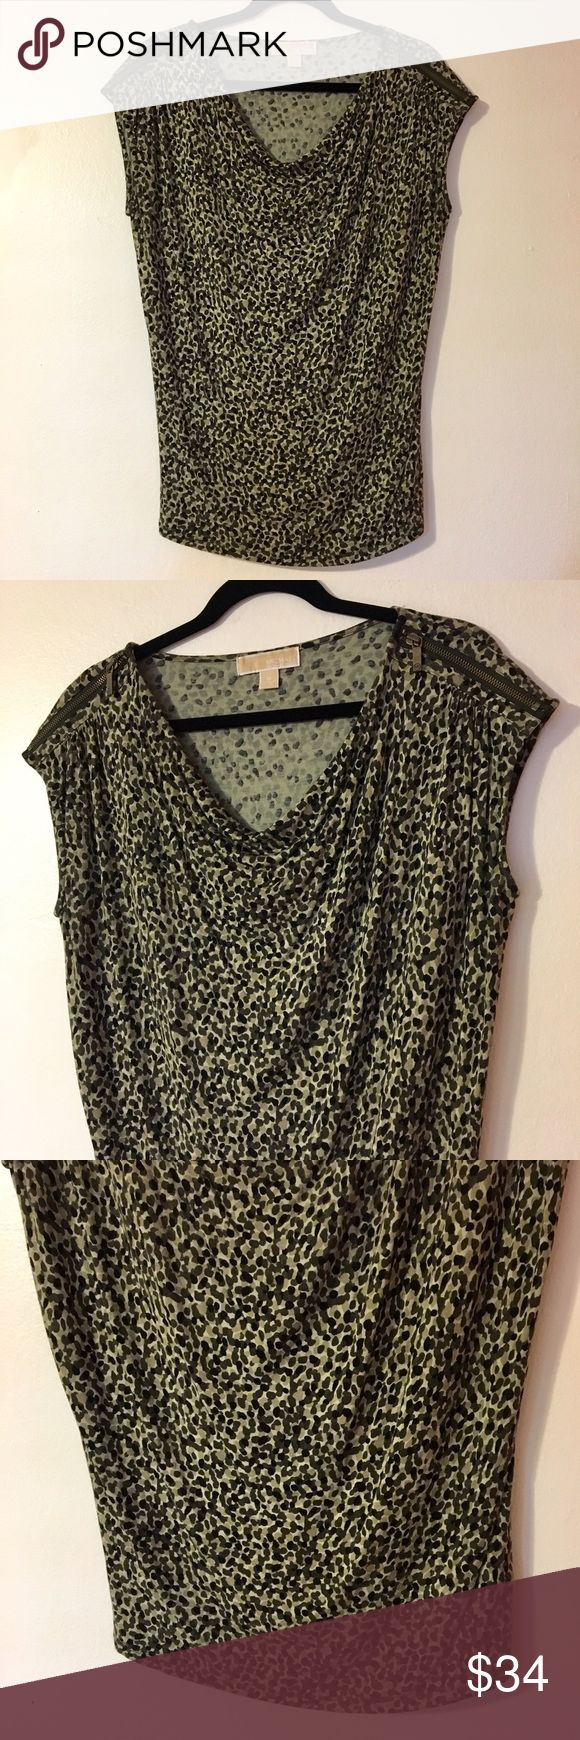 Michael Michael Kors Camo Blousy Shirt Medium Michael Michael Kors Green Camo Style Blousy Zipper Shirt Medium Has zippers on each side of shoulder Material is super soft: 95% rayon 5% spandex Excellent condition! MICHAEL Michael Kors Tops Blouses